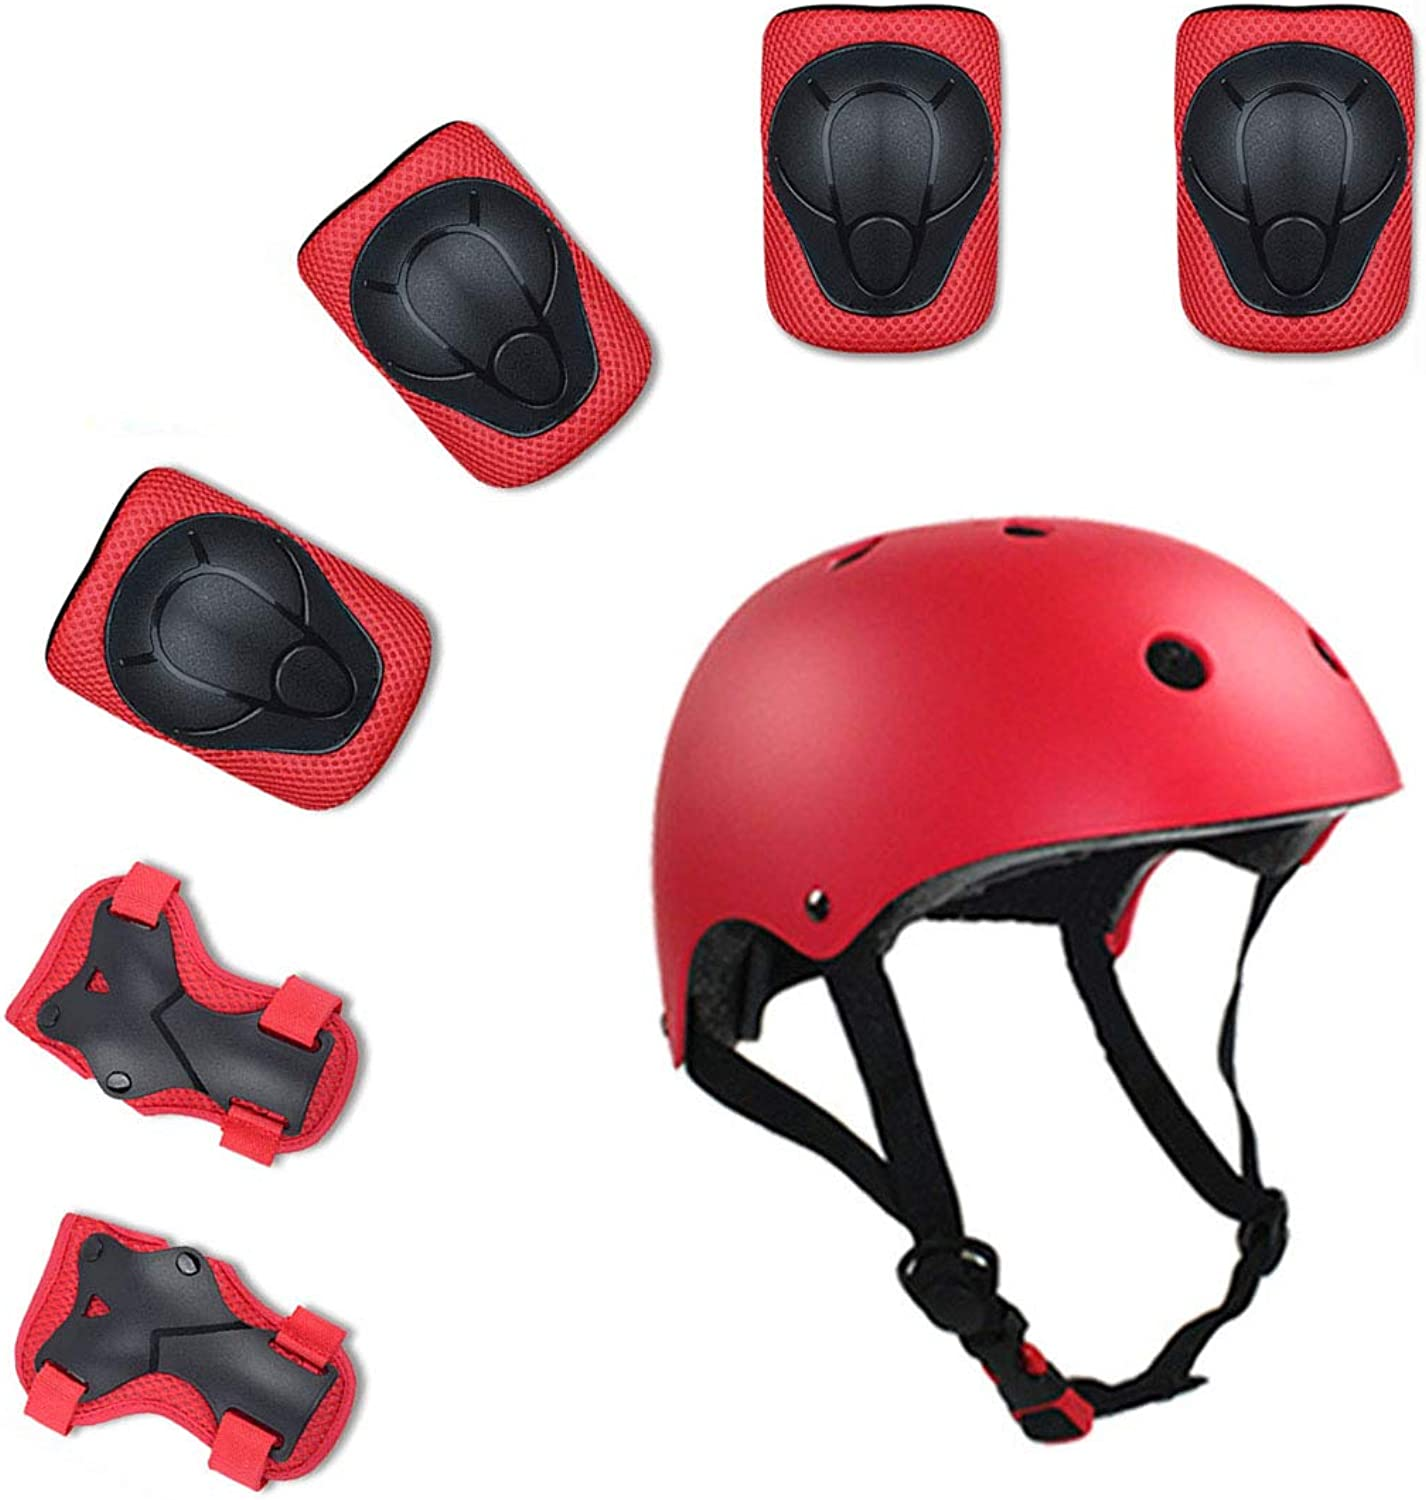 Kids 7 PCS Outdoor Sports Predective Gear Set Cycling Helmet Safety Pads Set Knee&Elbow Pads and Wrist Guards